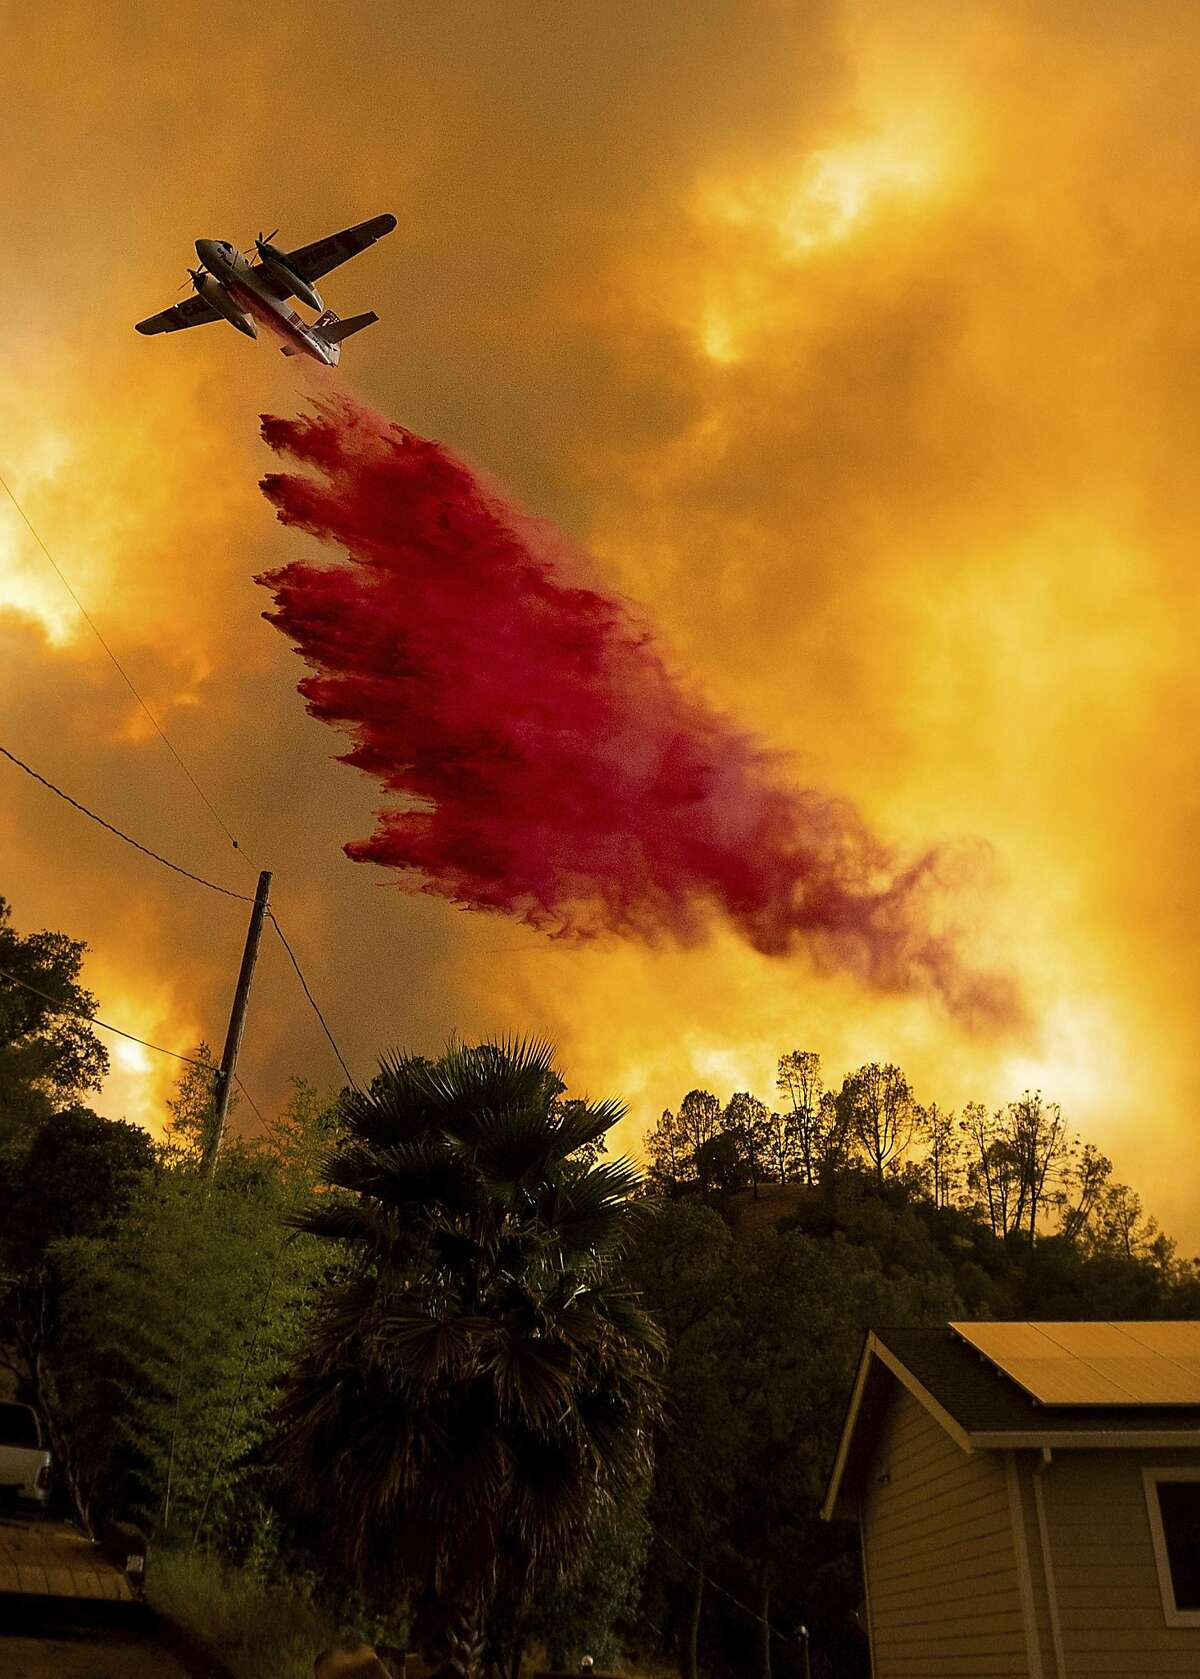 An air tanker drops retardant as the LNU Lightning Complex fires tear through the Spanish Flat community in unincorporated Napa County, Calif., Tuesday, Aug. 18, 2020. Fire crews across the region scrambled to contain dozens of wildfires sparked by lightning strikes as a statewide heat wave continues. (AP Photo/Noah Berger)